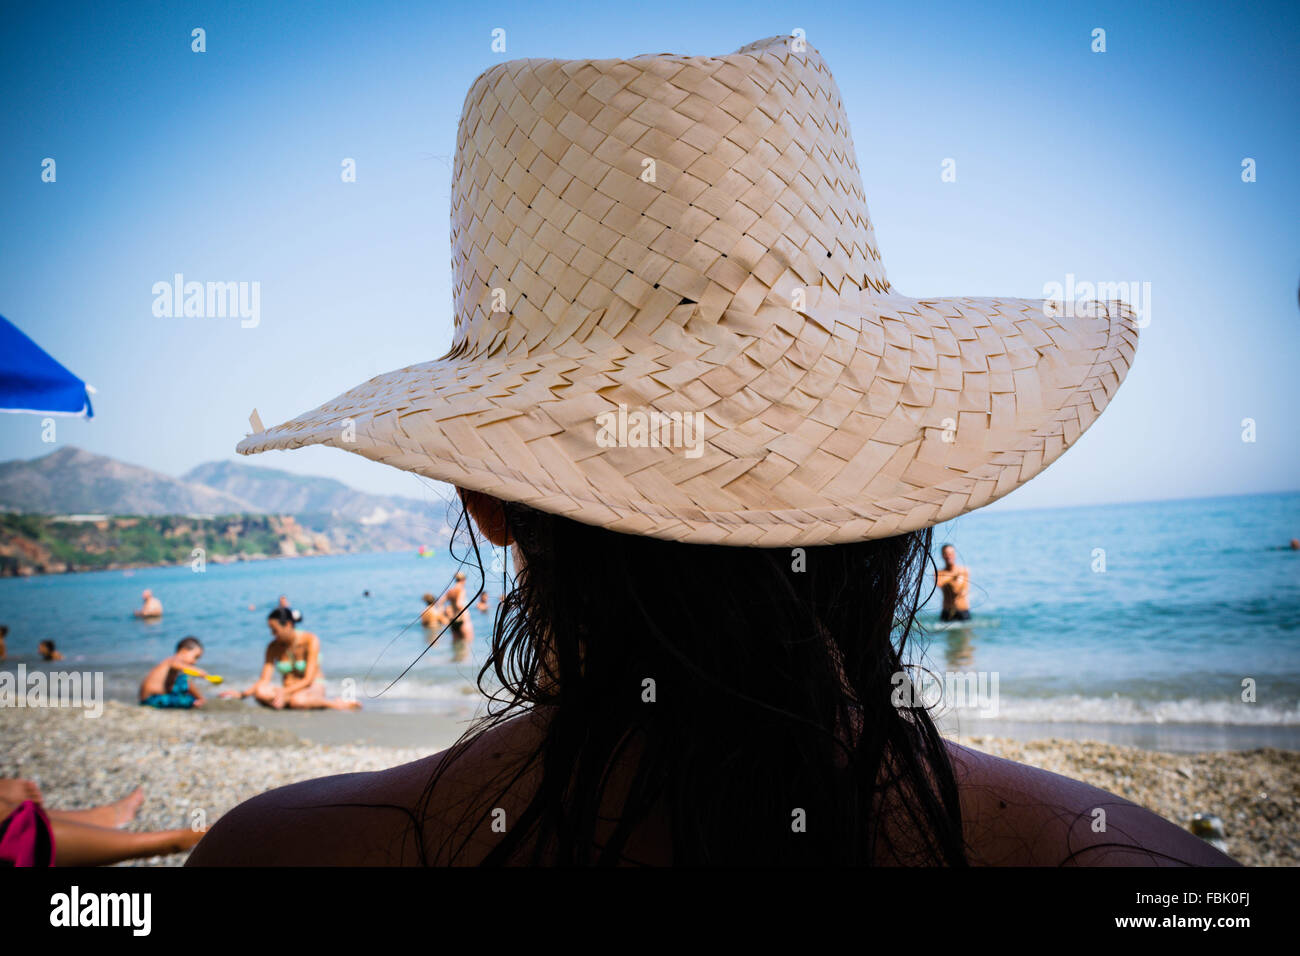 A holidaymaker relaxes on a Spanish beach wearing a straw hat. - Stock Image